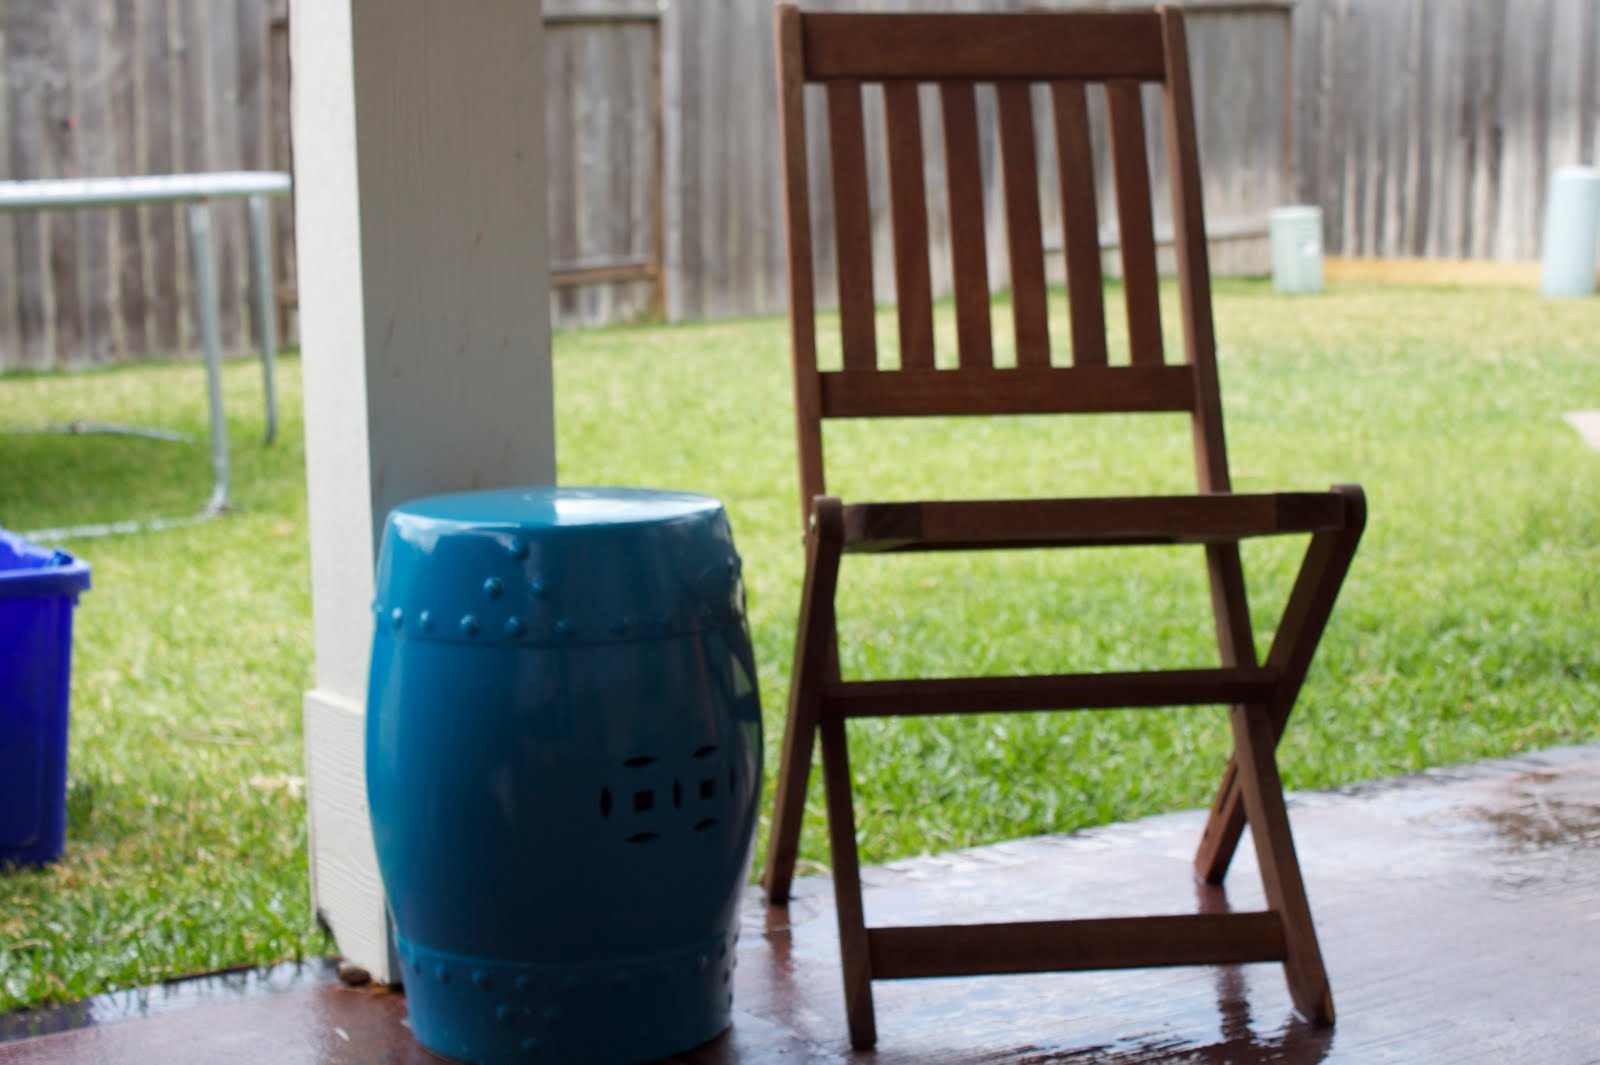 Trend This is the Frontgate teak chair I found in the trash It needs a little throw pillow I found the ceramic garden stool at Big Lots for